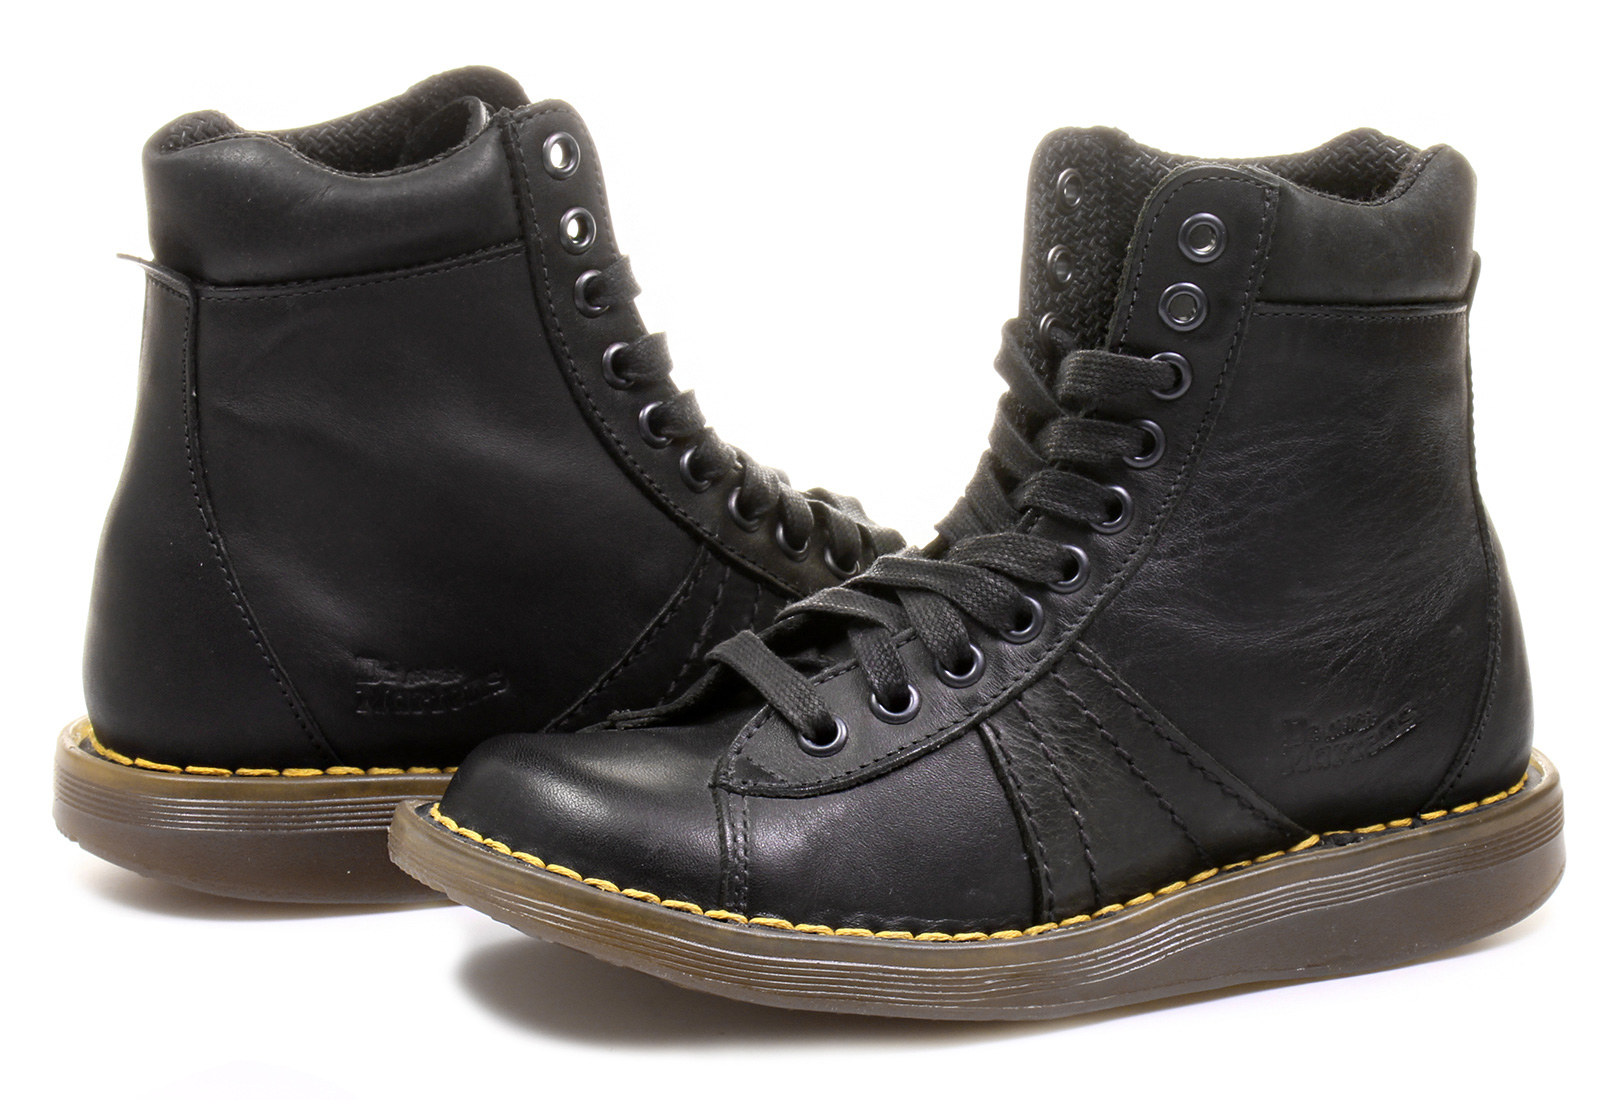 Dr Martens Shoes - 2B25 B-Fgwd - 10321002 - Online shop for ... 37179357c3